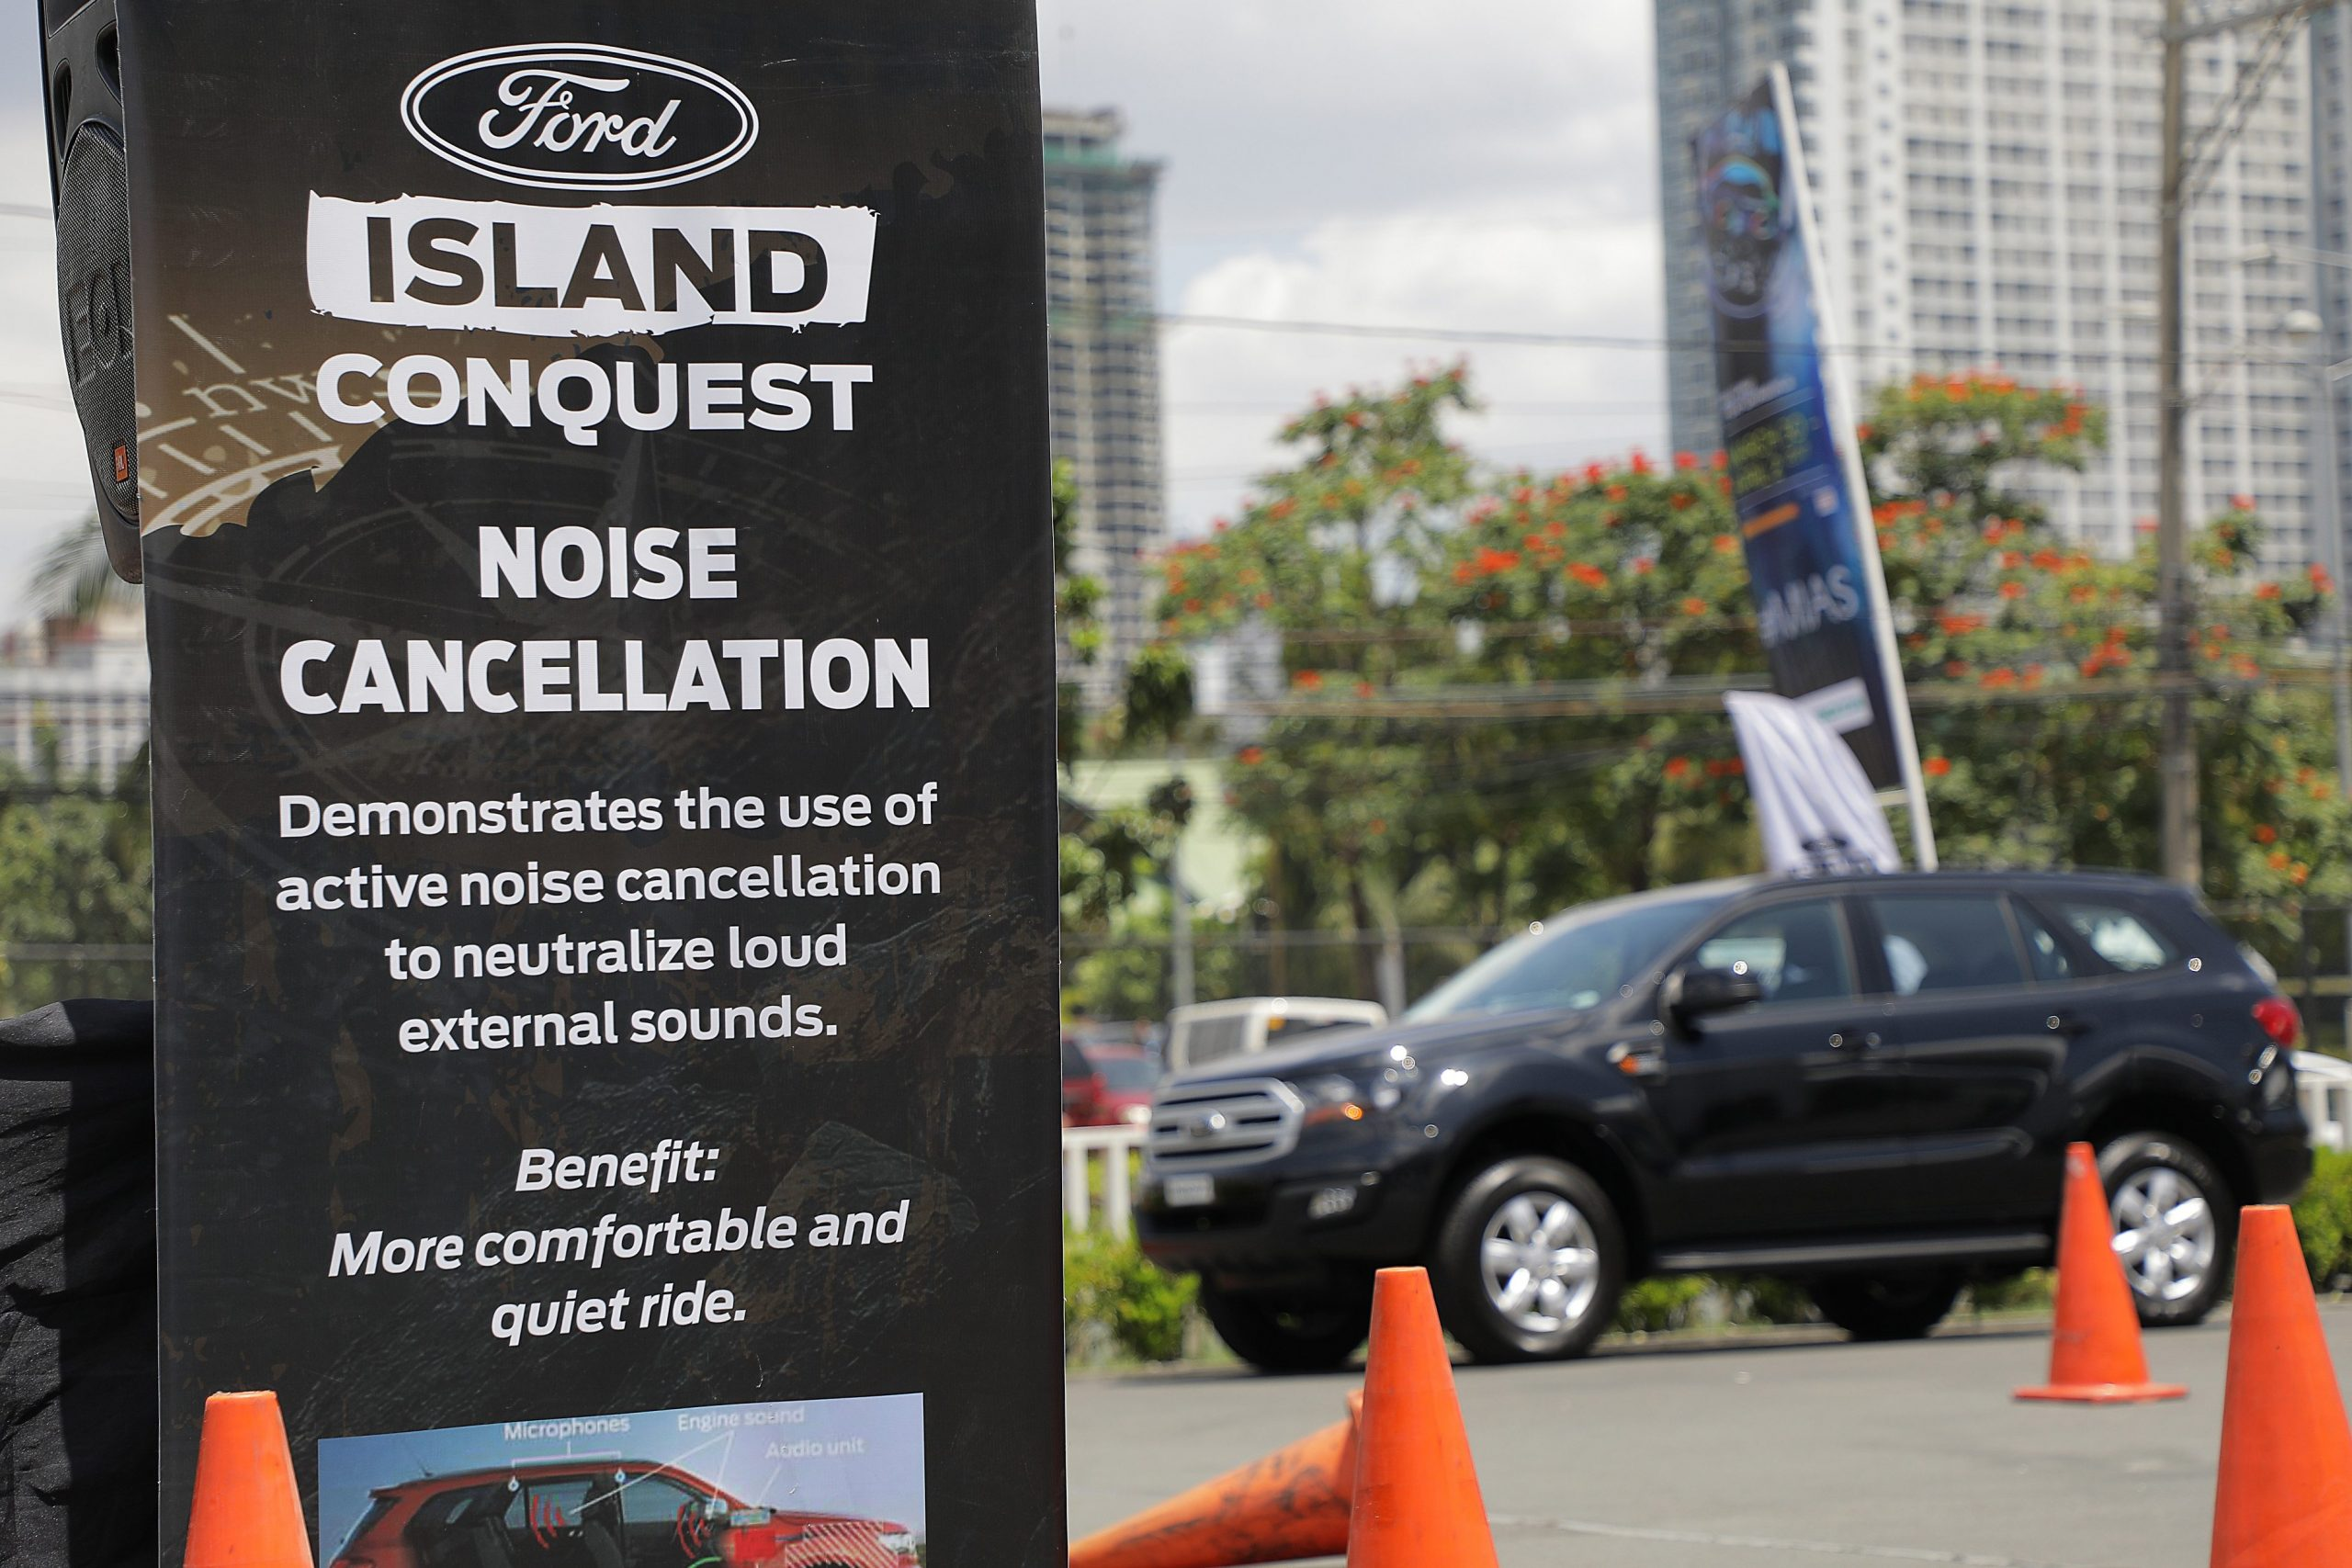 Ford Island Conquest